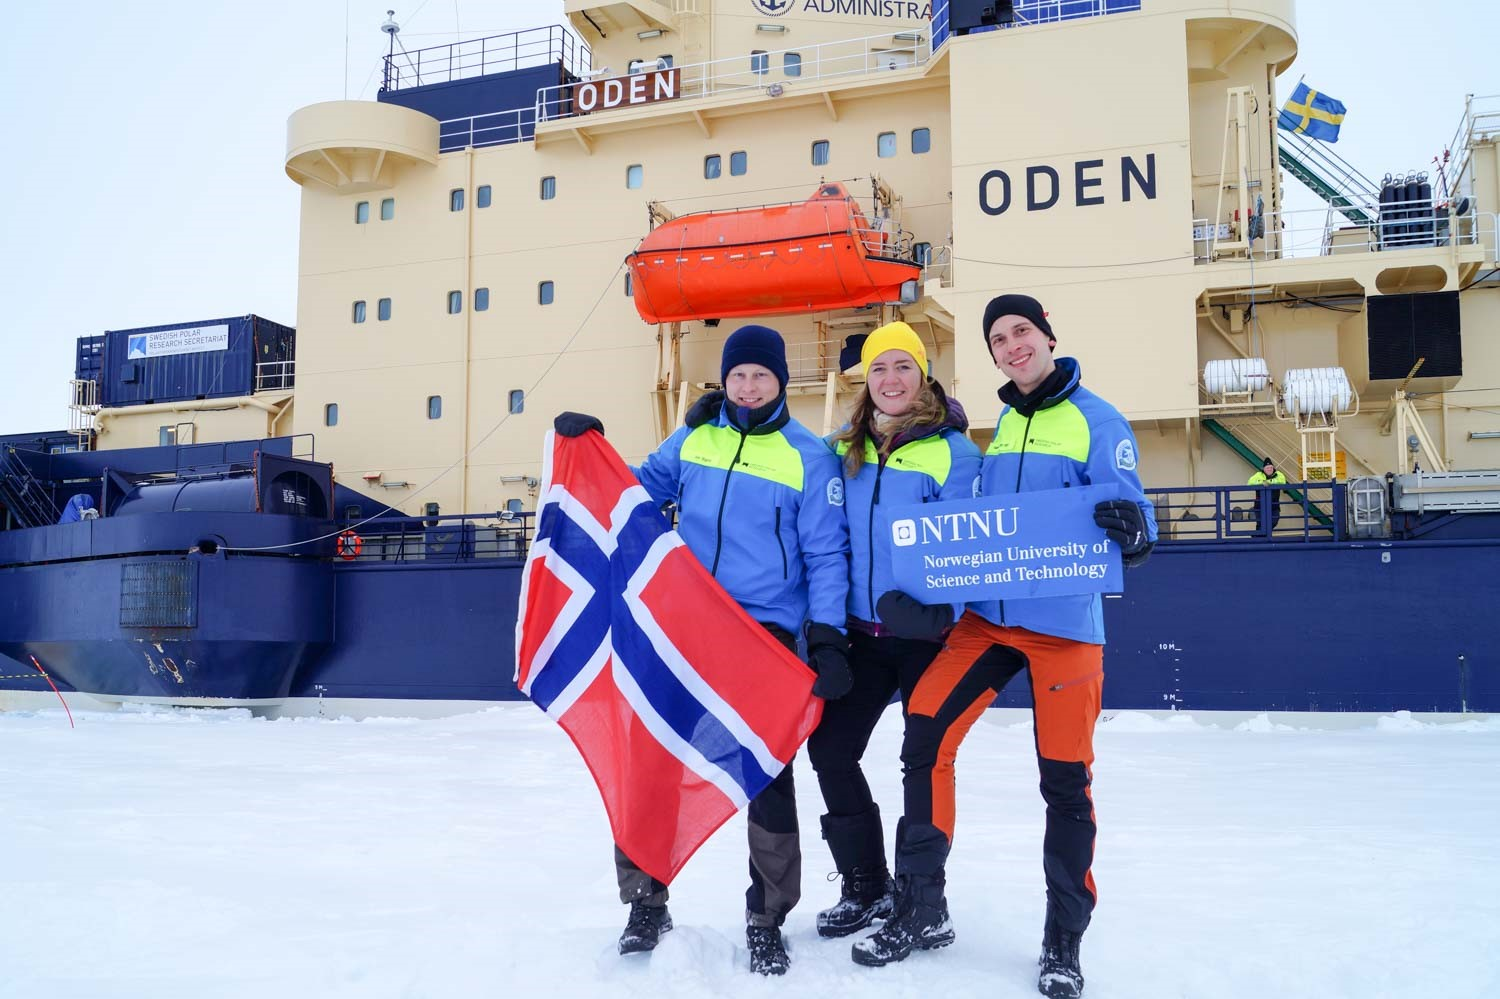 Figure 4 SAMCoT researchers Bjørnø, Skarbø and Heyn at the North Pole, 21 August 2016